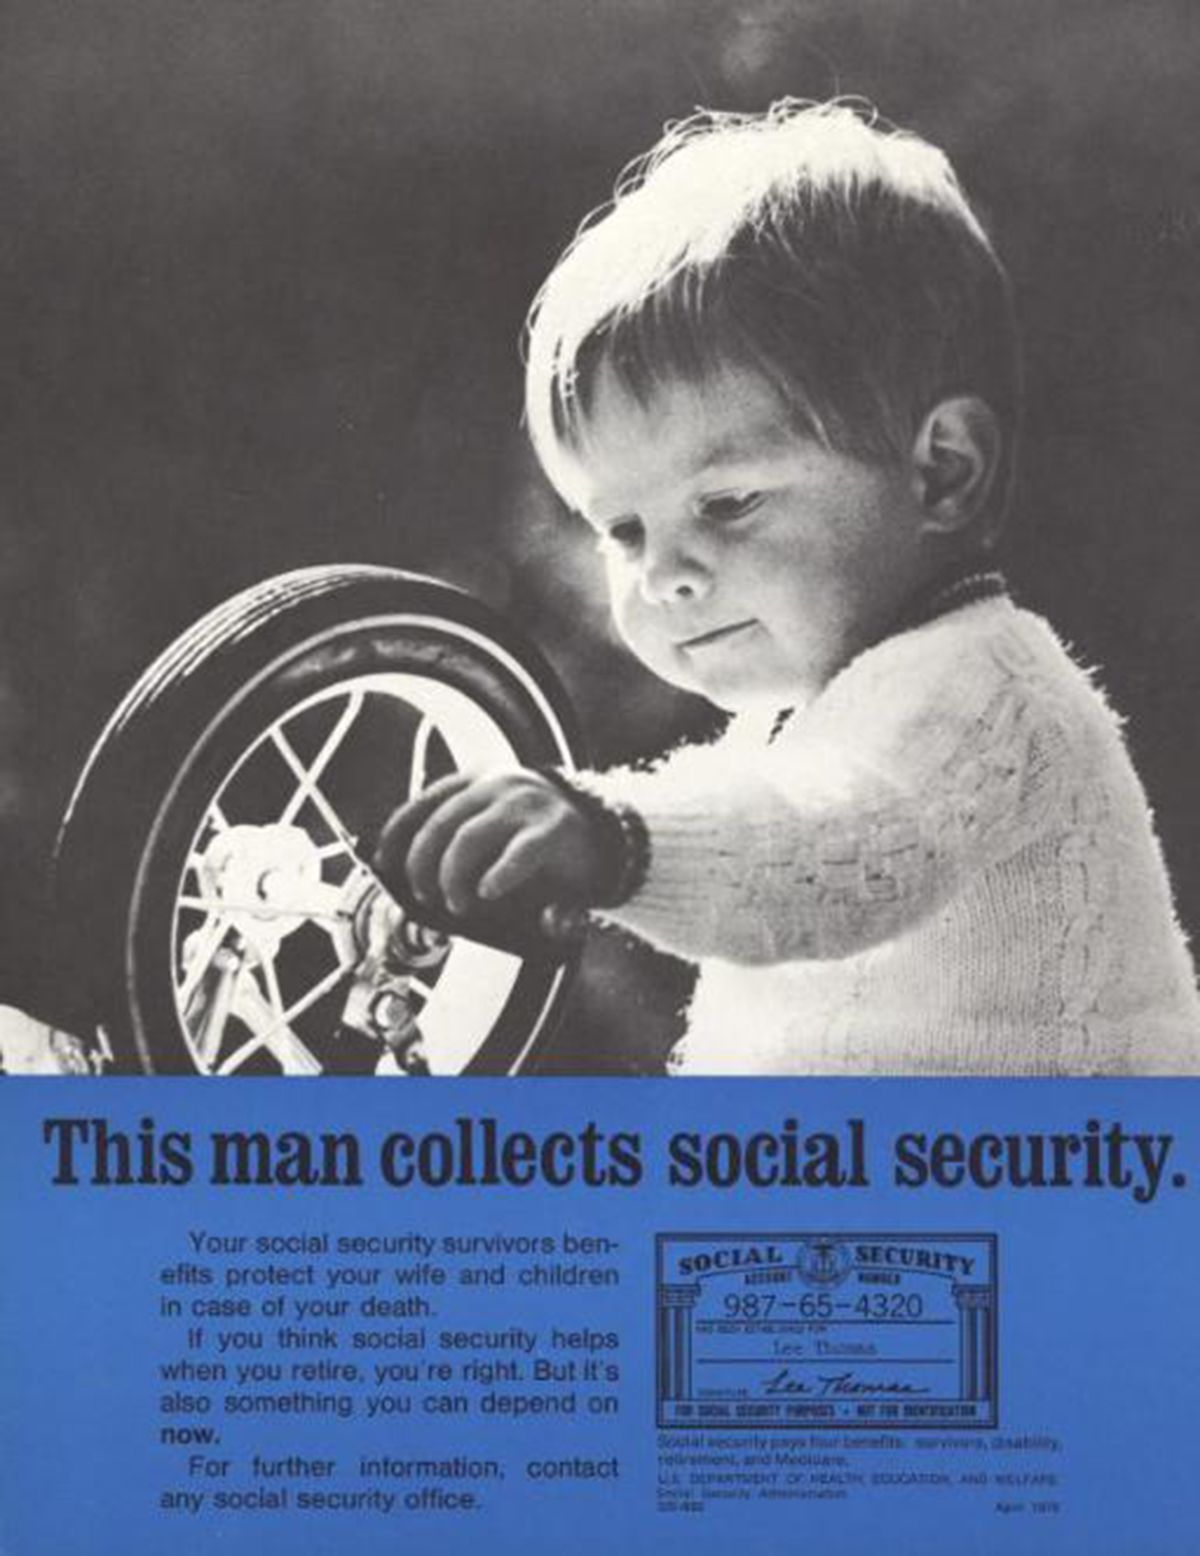 Tbt S Poster Makes Point That Socialsecurity Is More Than A